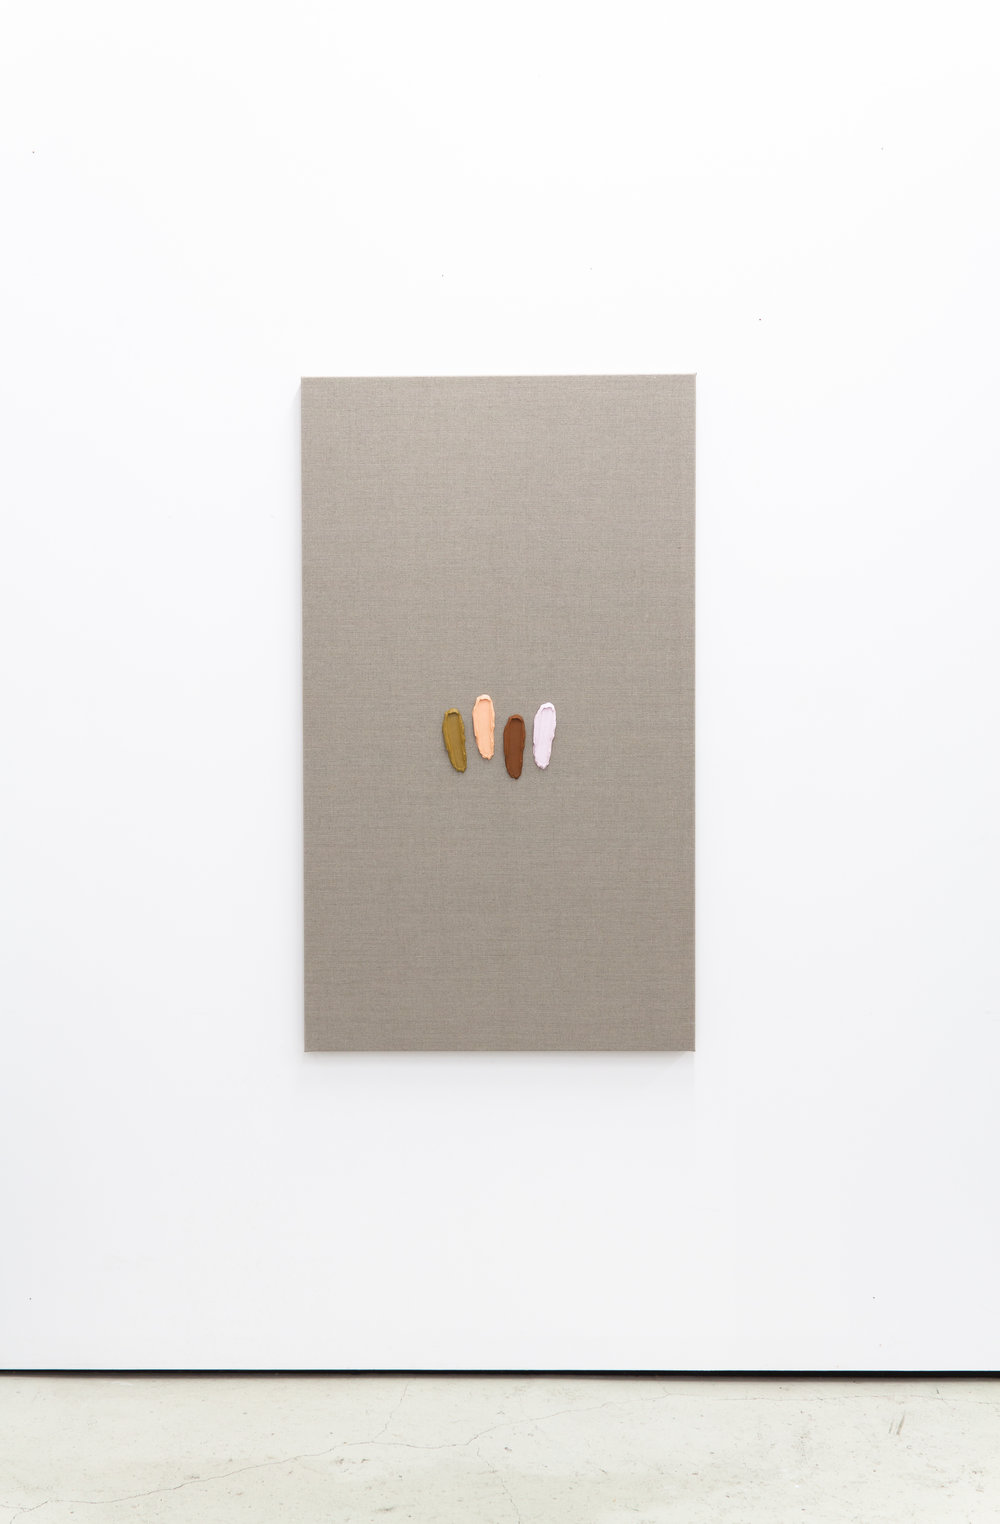 Untitled, 2019, Alkyd and acrylics on linen, 47.2 x 27.6 inches